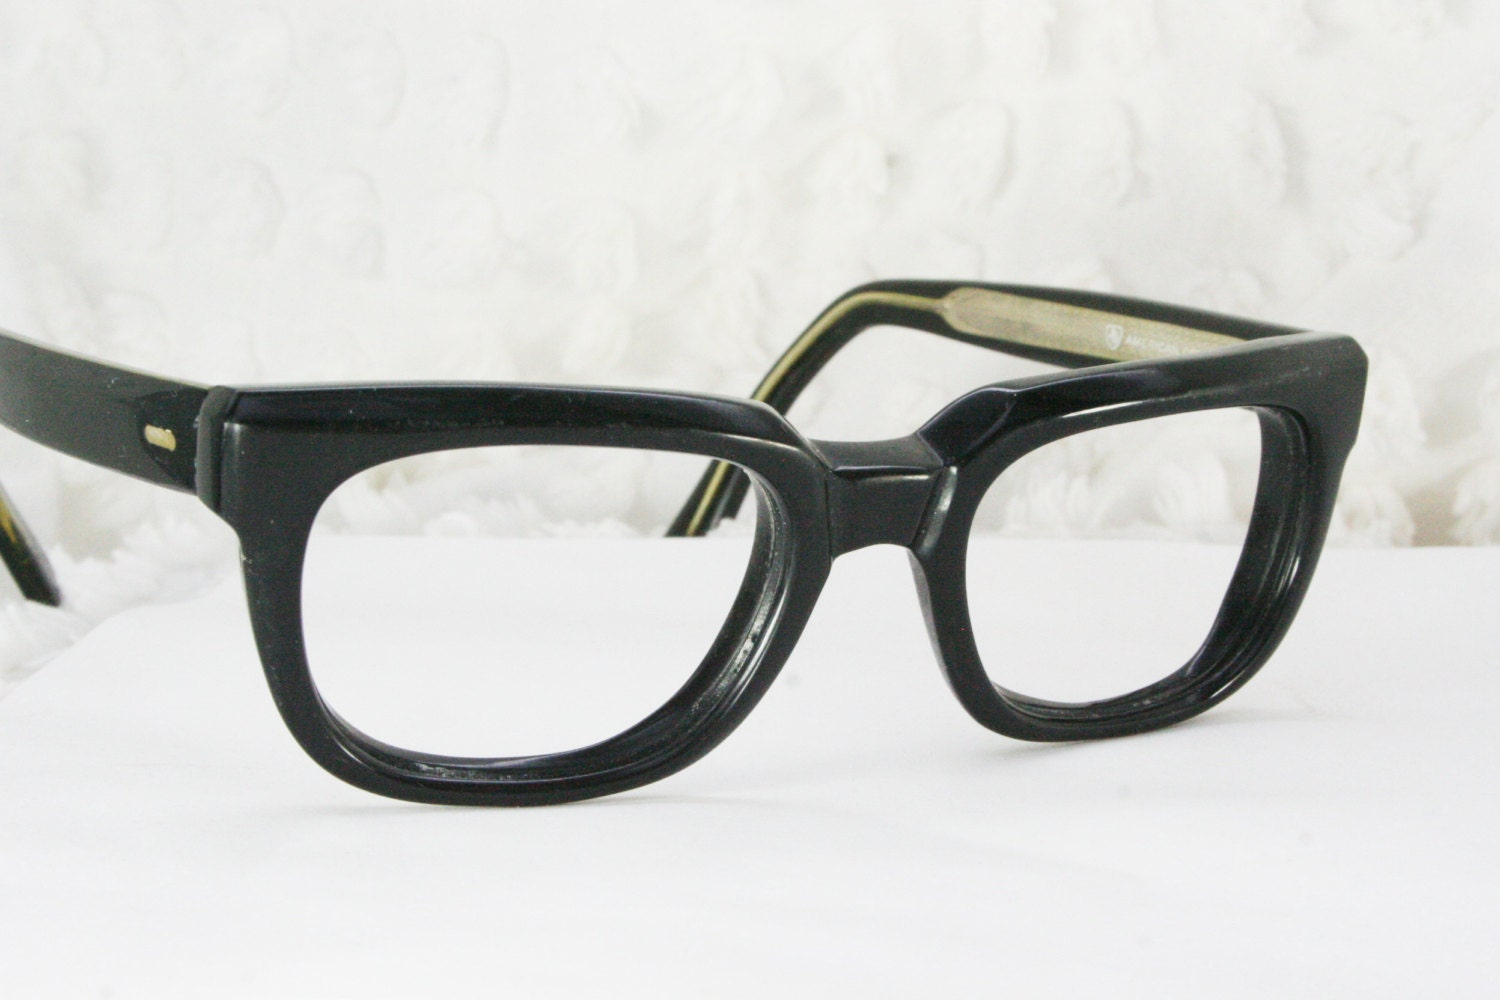 Big Thick Frame Glasses : Vintage 60s Mens Glasses 1950s Black Eyeglasses by DIAeyewear